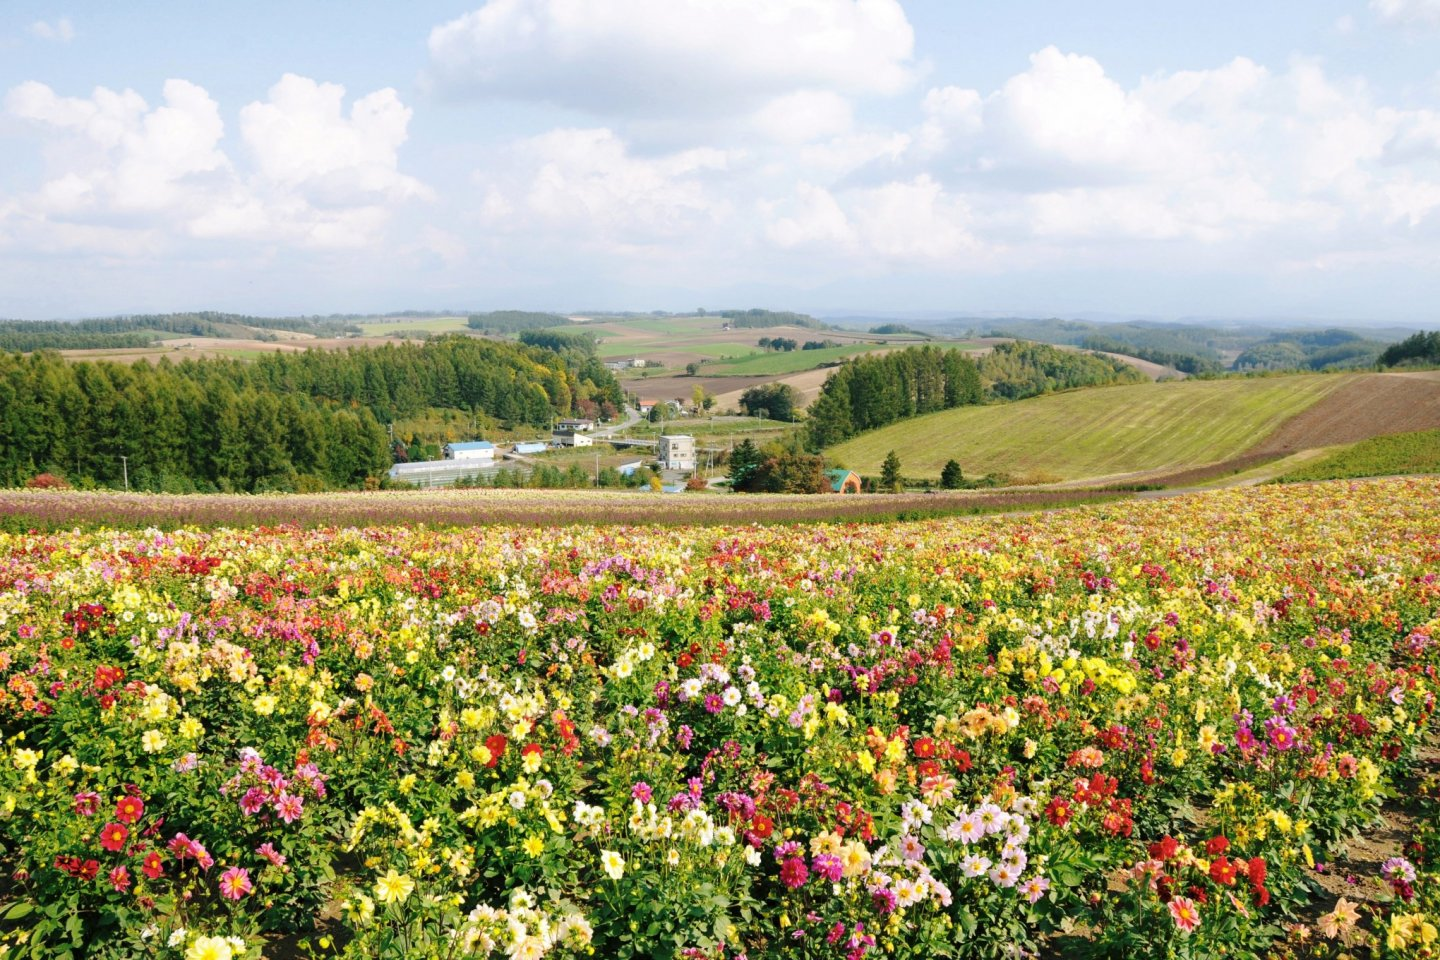 The garden sits on the top of a hill and has amazing views of the surrounding farms.